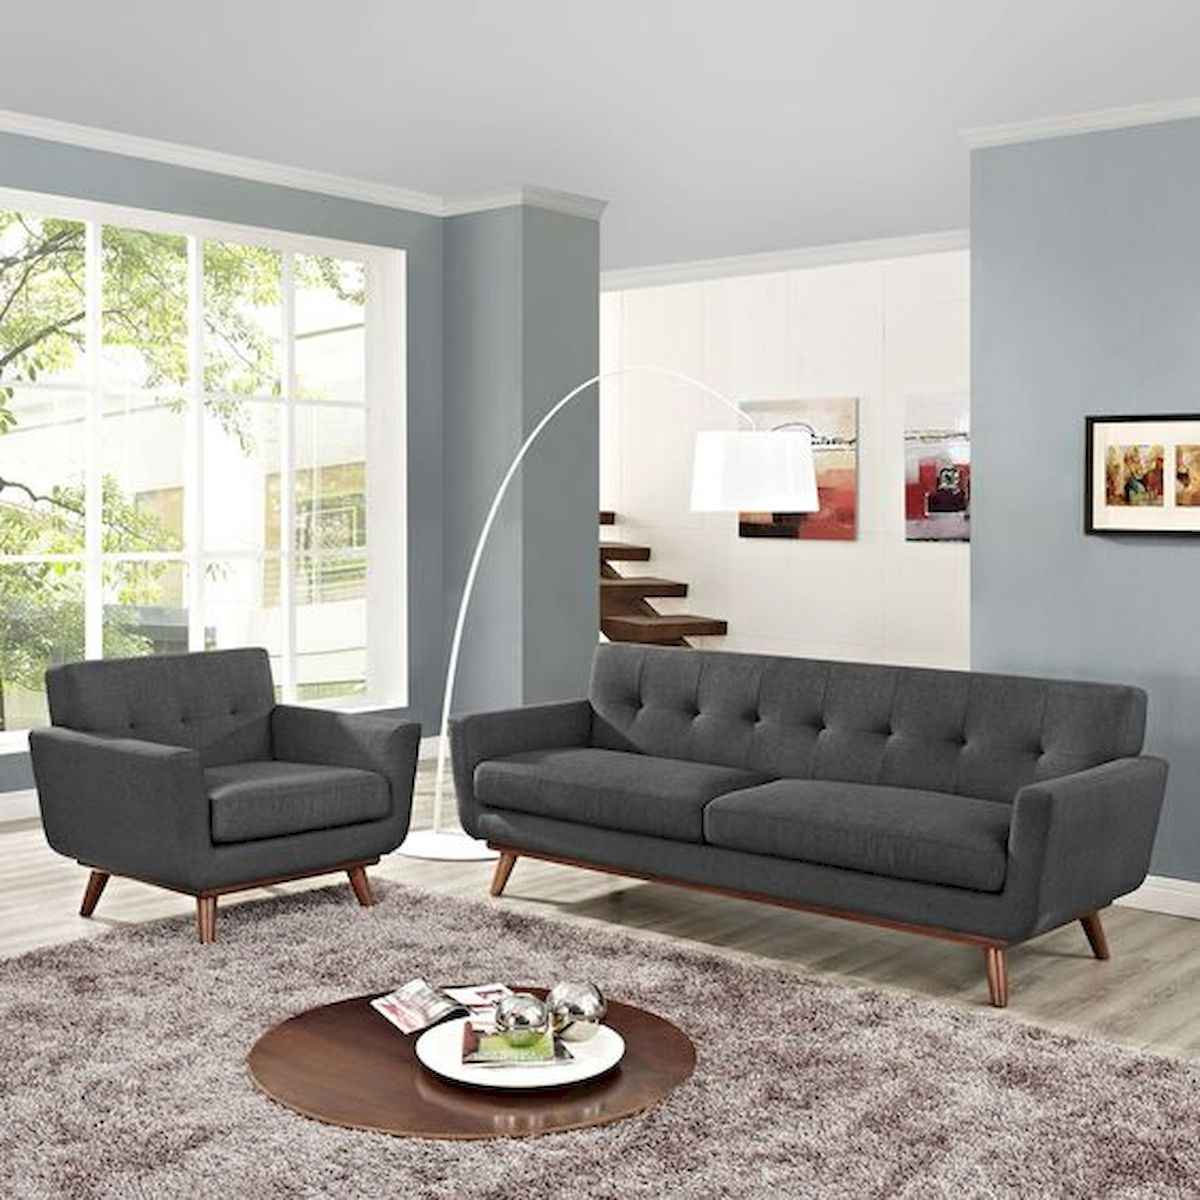 70 Stunning Grey White Black Living Room Decor Ideas And Remodel (21)